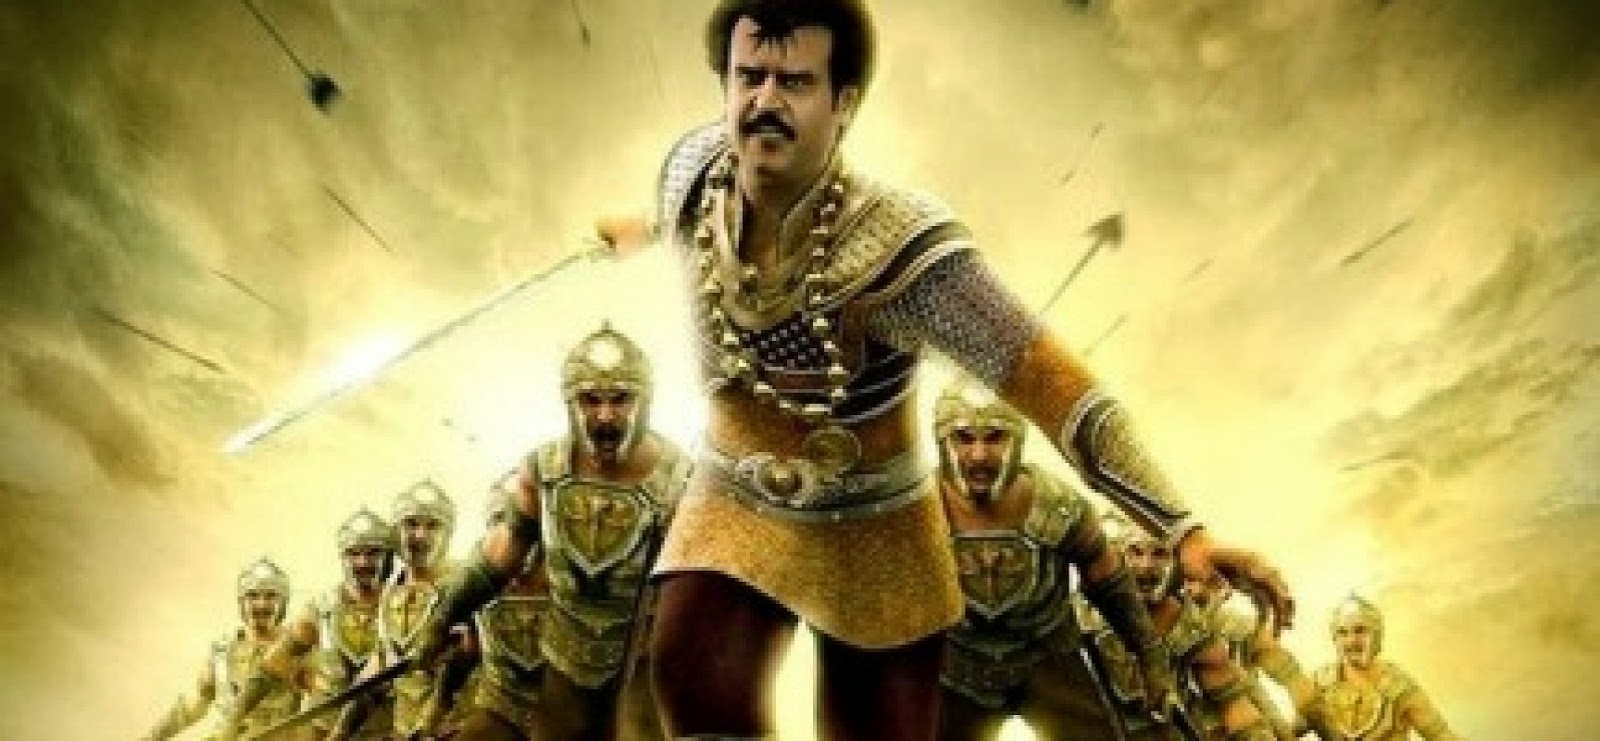 Rajinikanth as Kochadaiiyaan, Rana and Sena